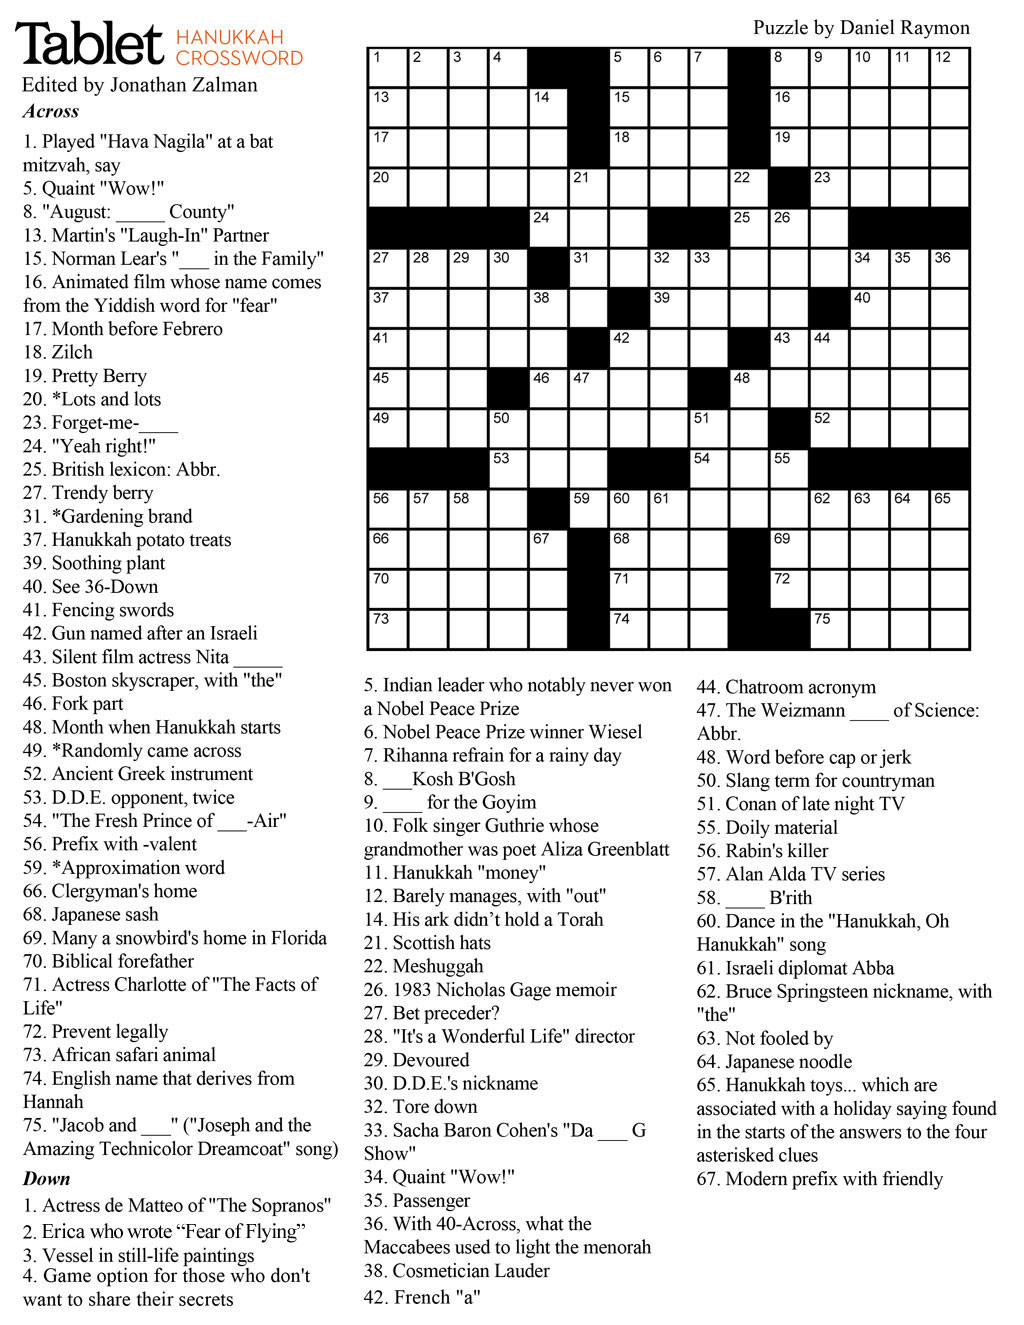 Wind Down With Our Hanukkah Crossword Puzzle! – Tablet Magazine - Inappropriate Crossword Puzzle Printable